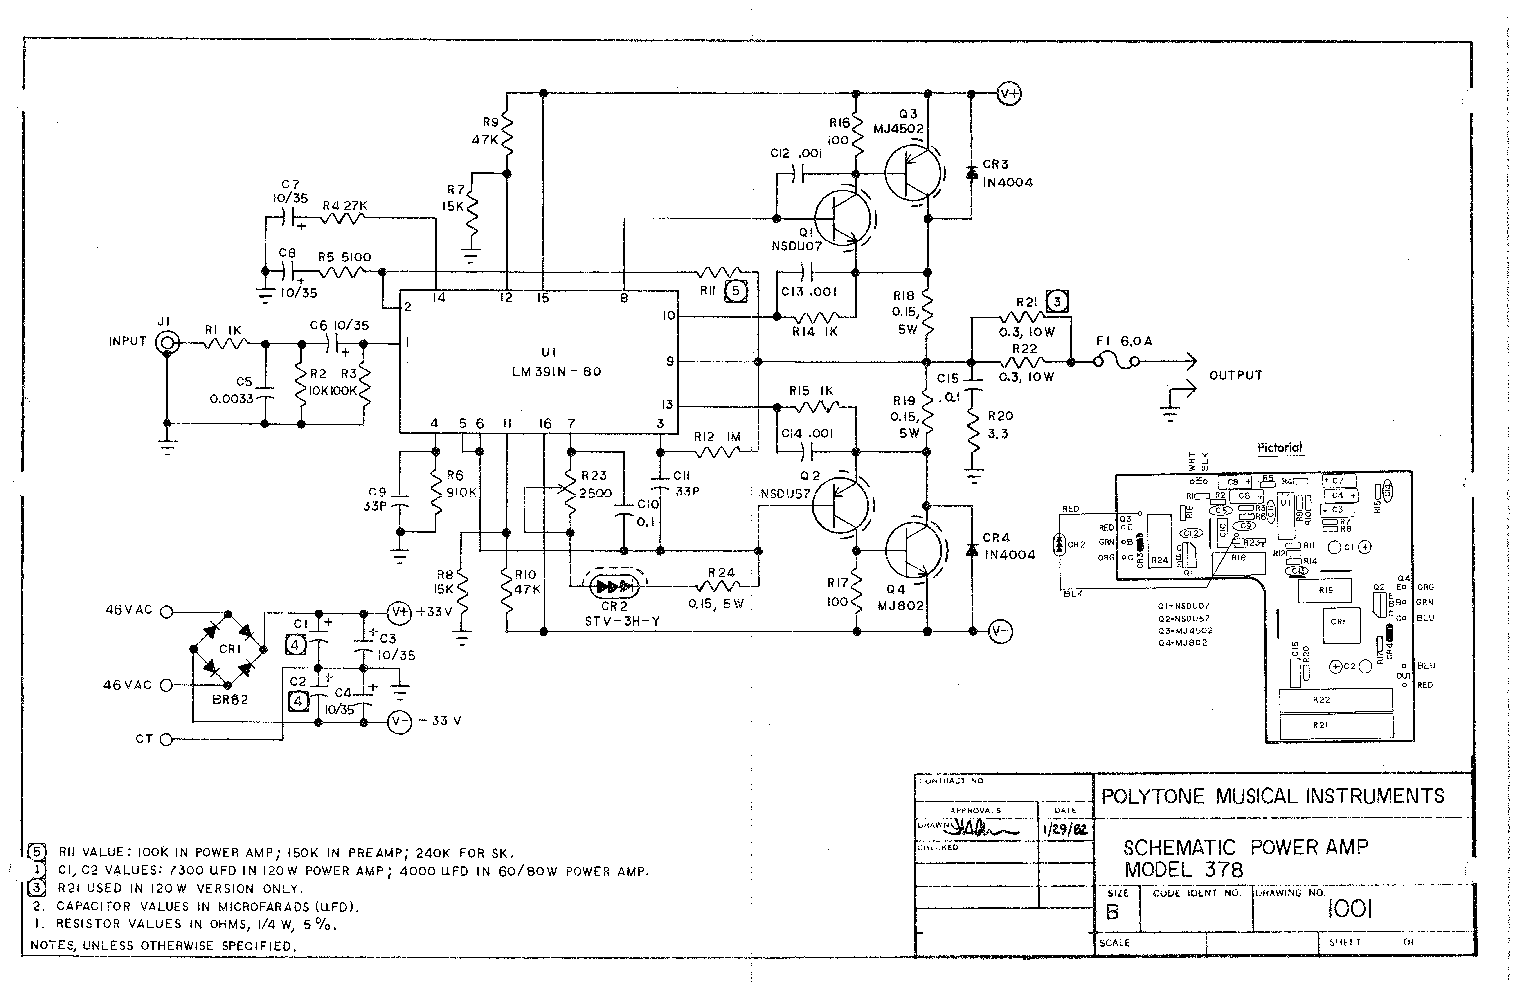 bass preamp schematic help needed page 2 electronics forum